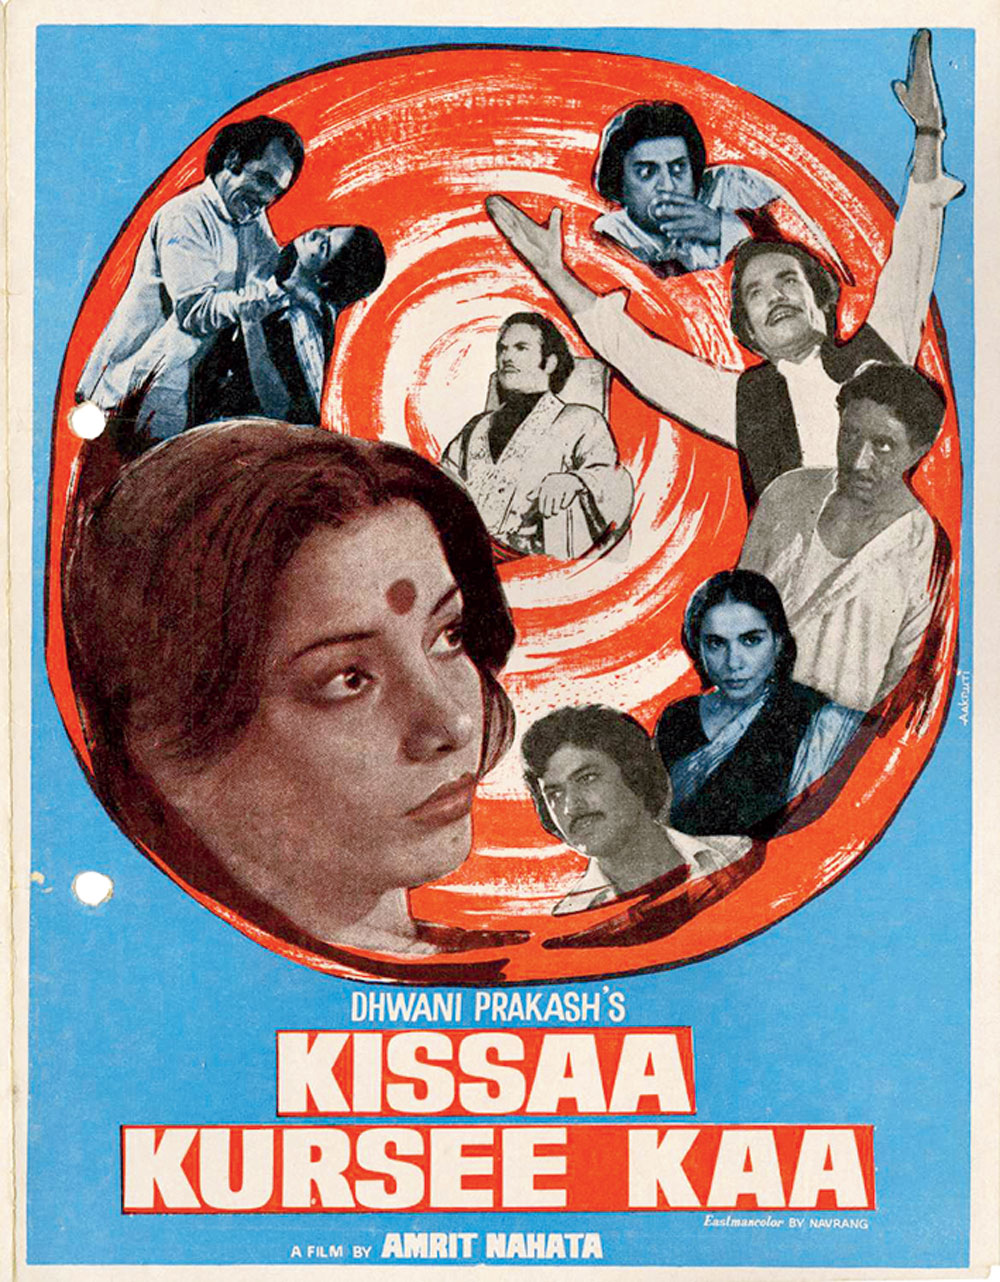 Kissaa Kursee Kaa, which spoofed Sanjay Gandhi, was banned by the Indian Government during the Emergency